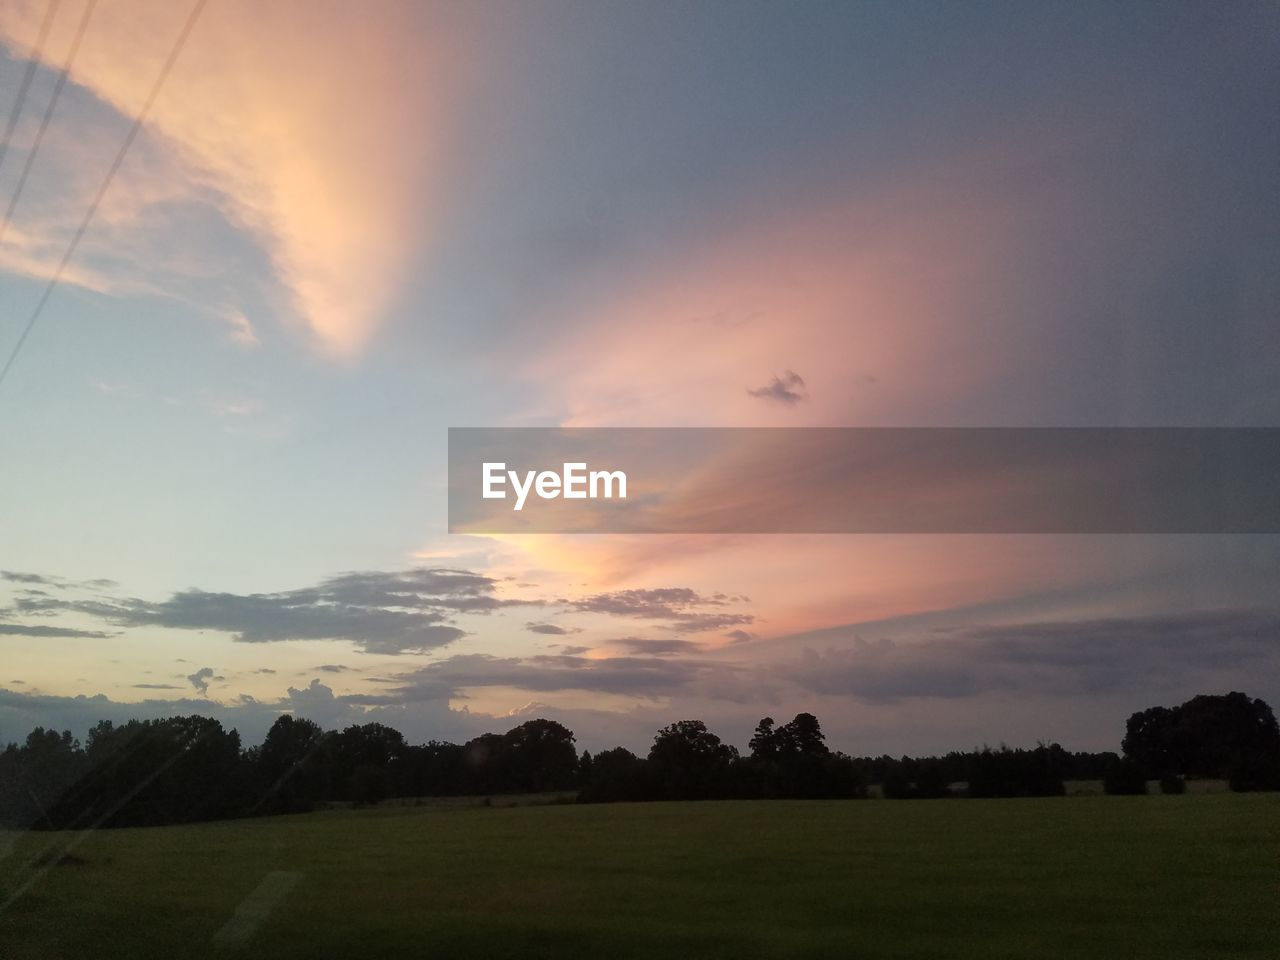 sunset, flying, nature, animal themes, landscape, sky, beauty in nature, scenics, tranquil scene, tranquility, grass, no people, one animal, field, animals in the wild, bird, outdoors, cloud - sky, animal wildlife, airplane, silhouette, tree, rural scene, day